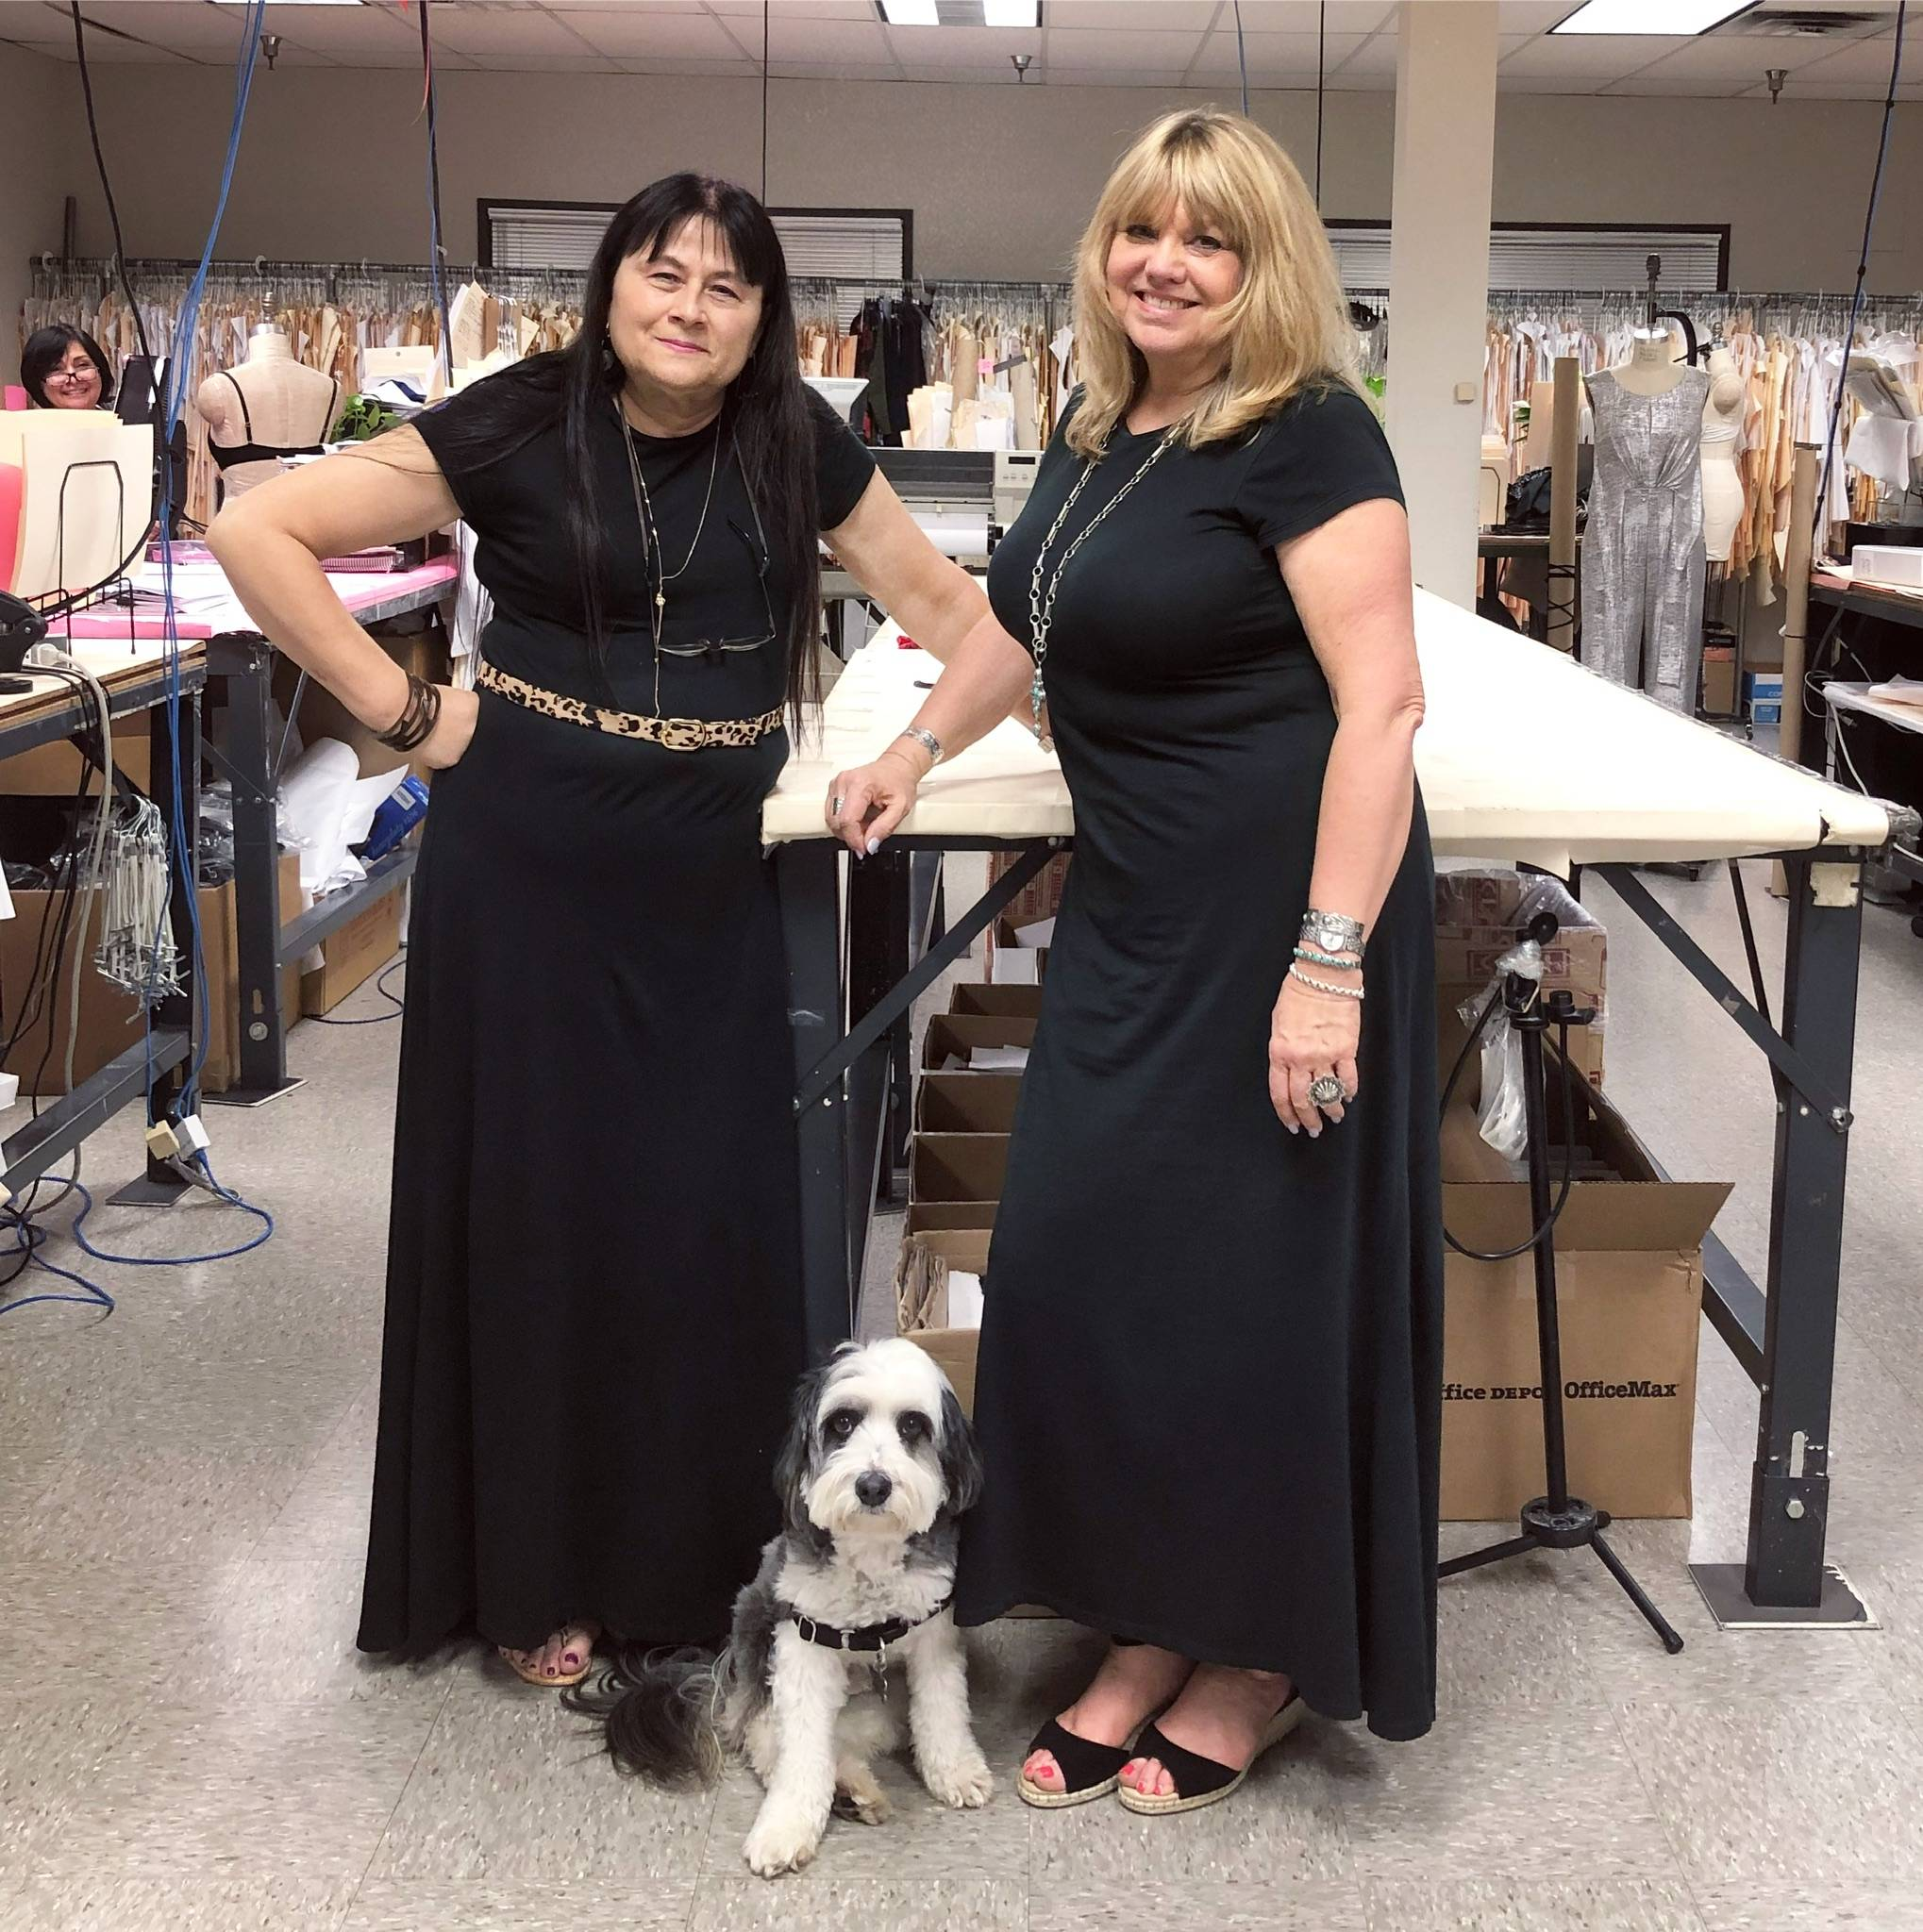 two women in matching black outfits posing in a connected apparel pattern room